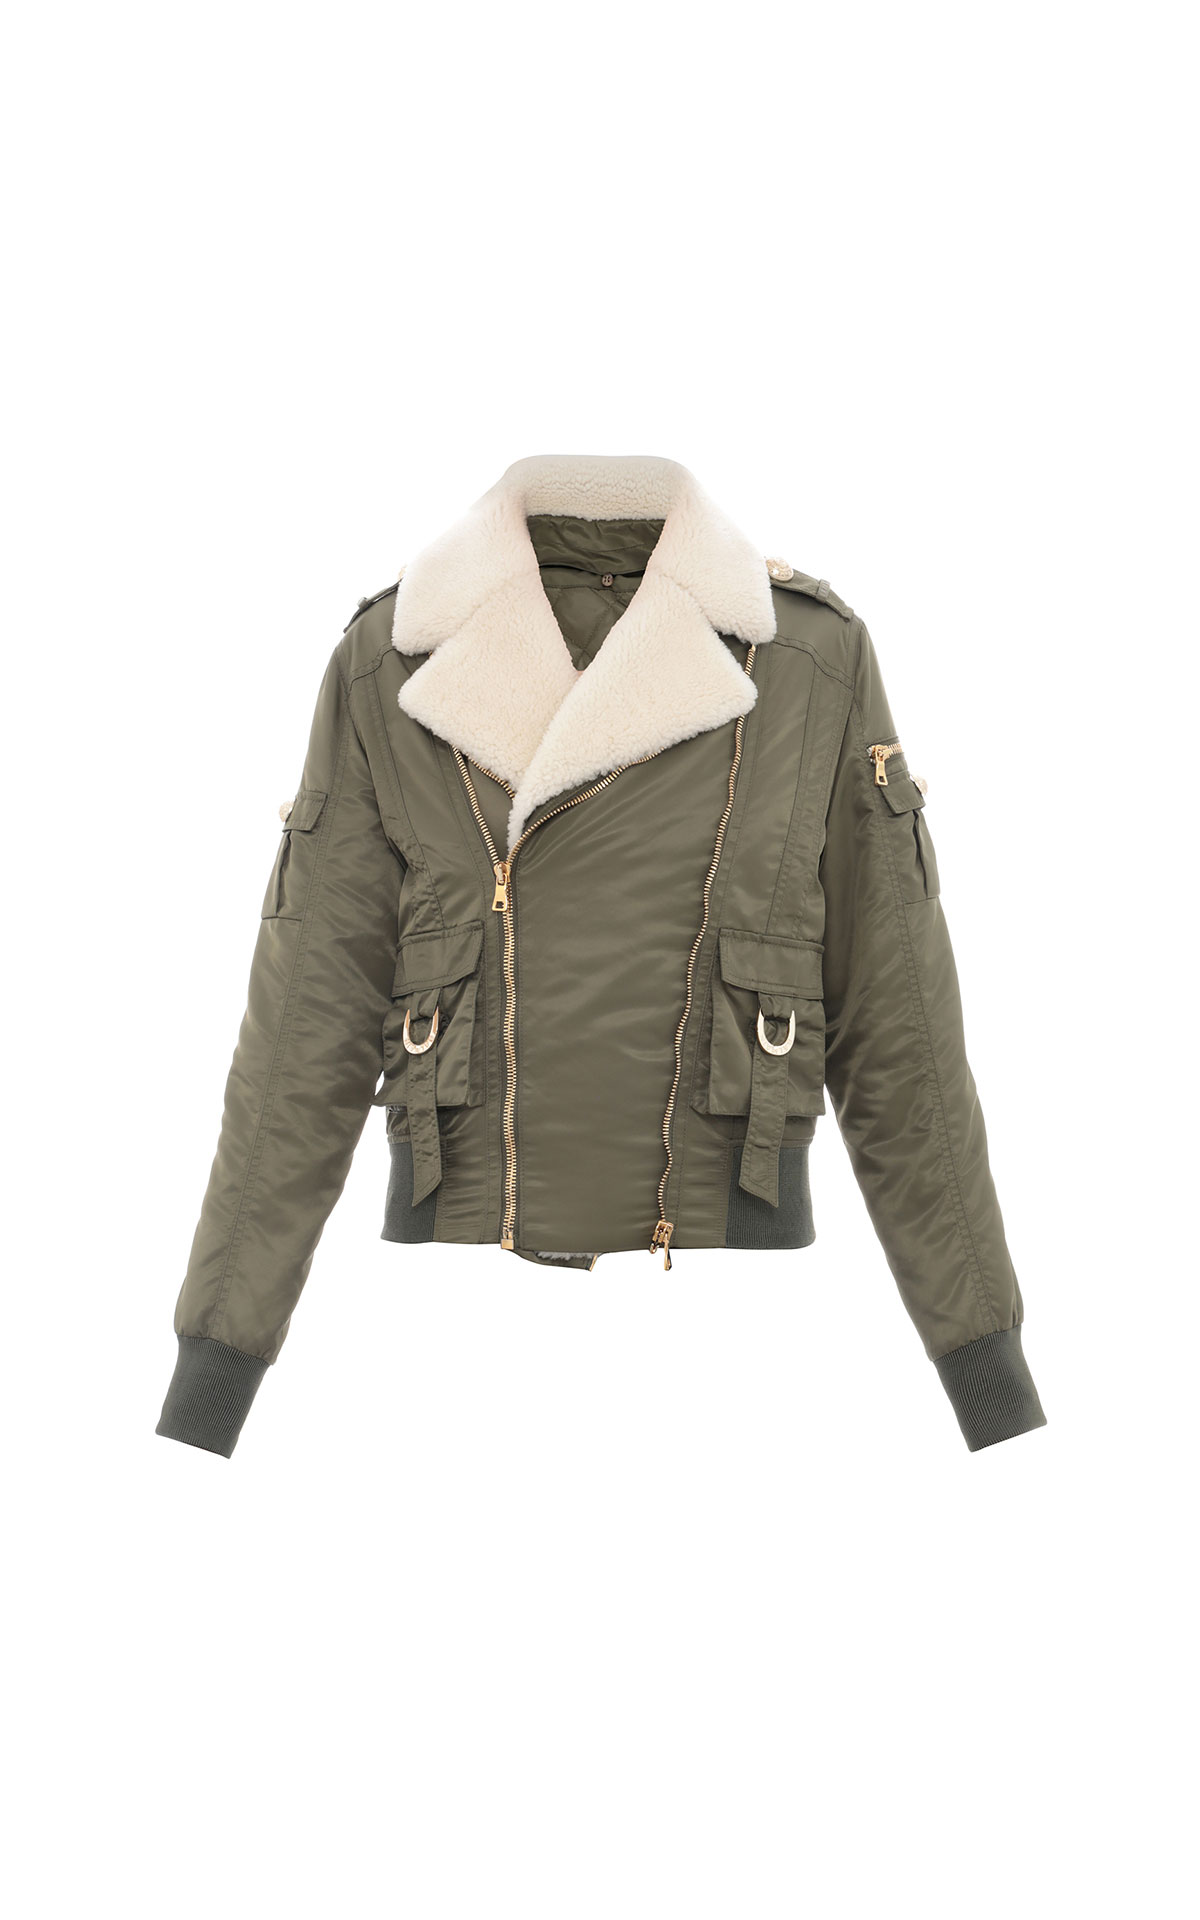 Balmain Shearling bomber jacket from Bicester Village